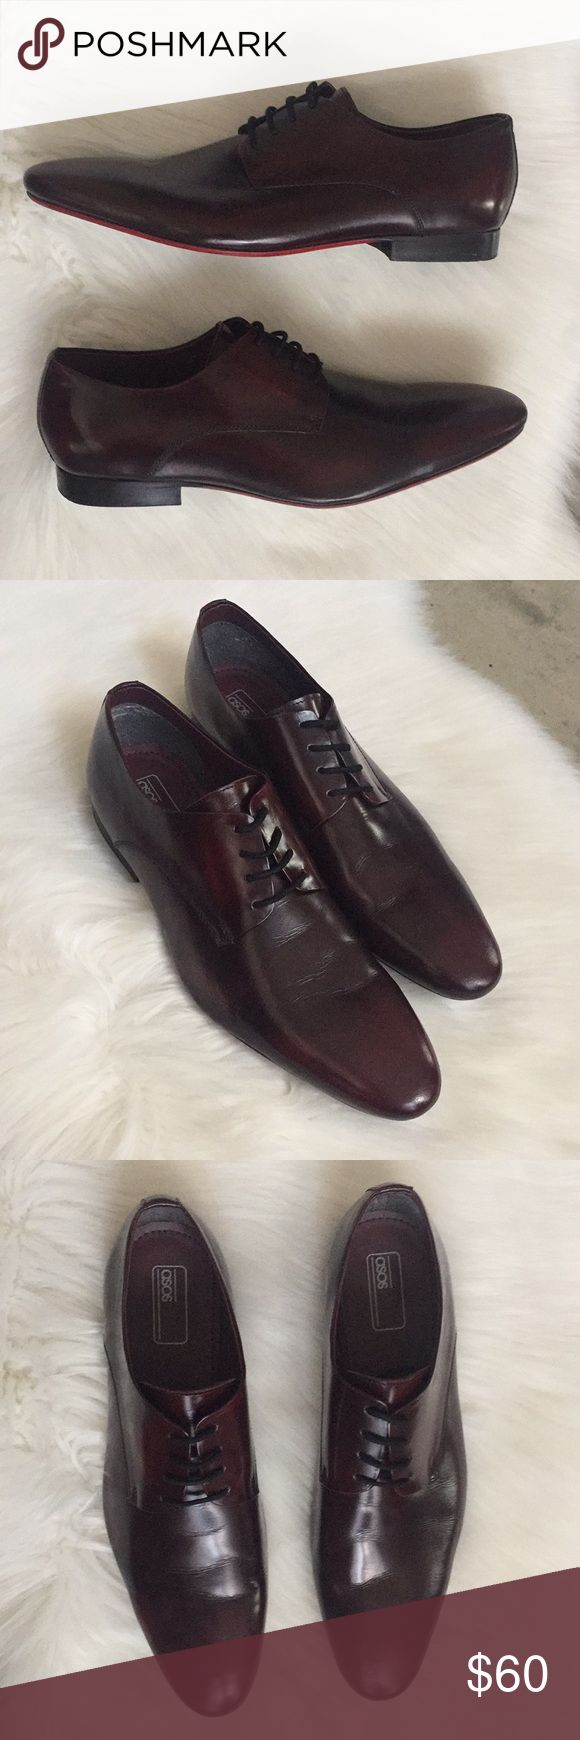 ASOS Oxblood Patent Leather Derby Shies Size 12 ASOS brand oxblood patent leather derby shoes. Size 12. Worn once, in very good condition.   Feel free to ask any questions. No trades, offers welcome. ASOS Shoes Oxfords & Derbys